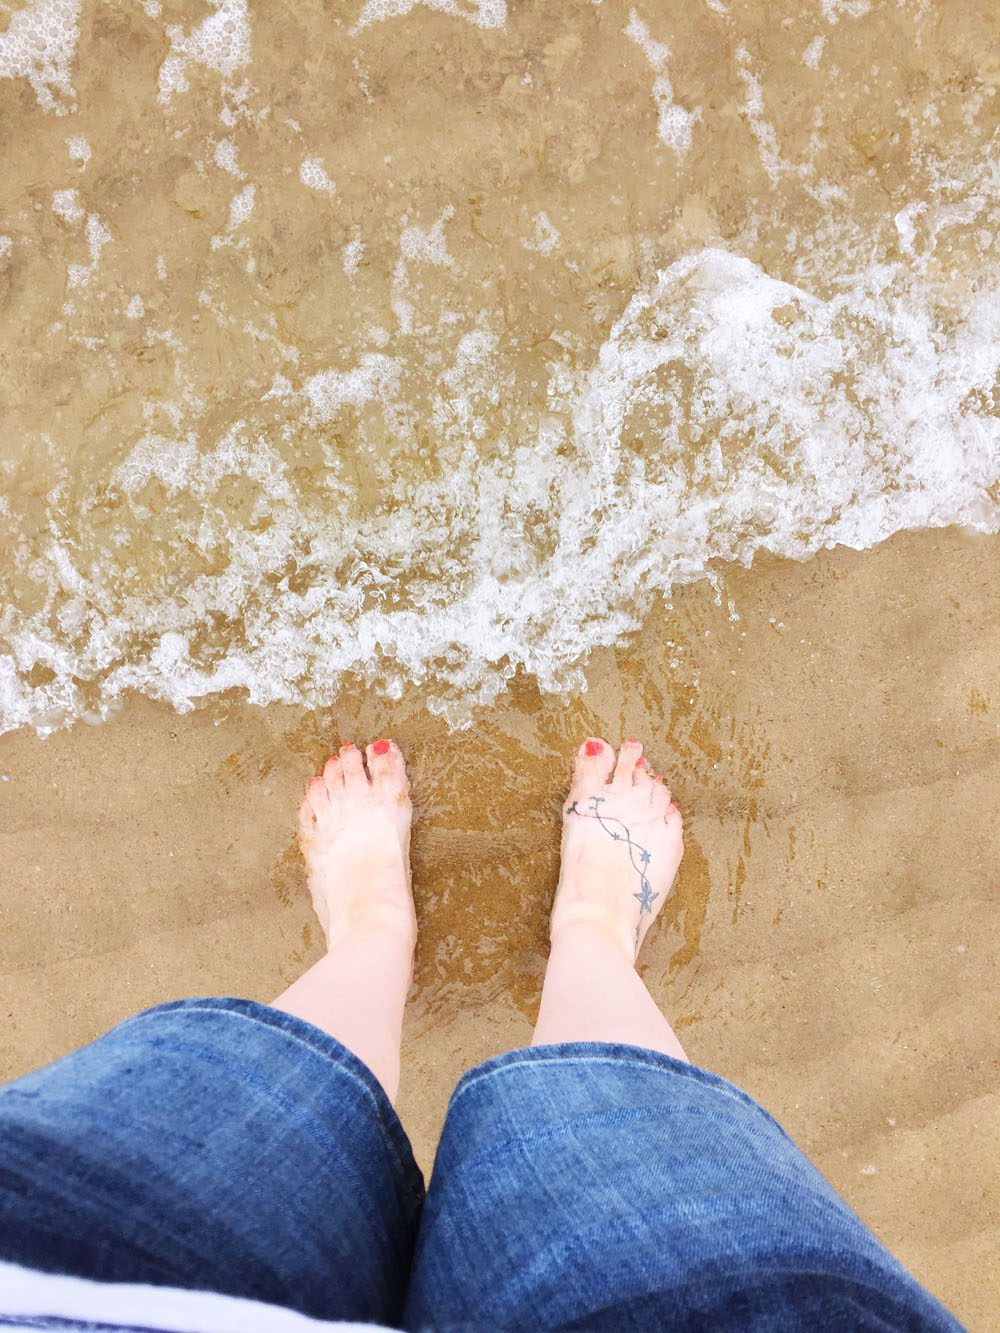 Feet in the sea